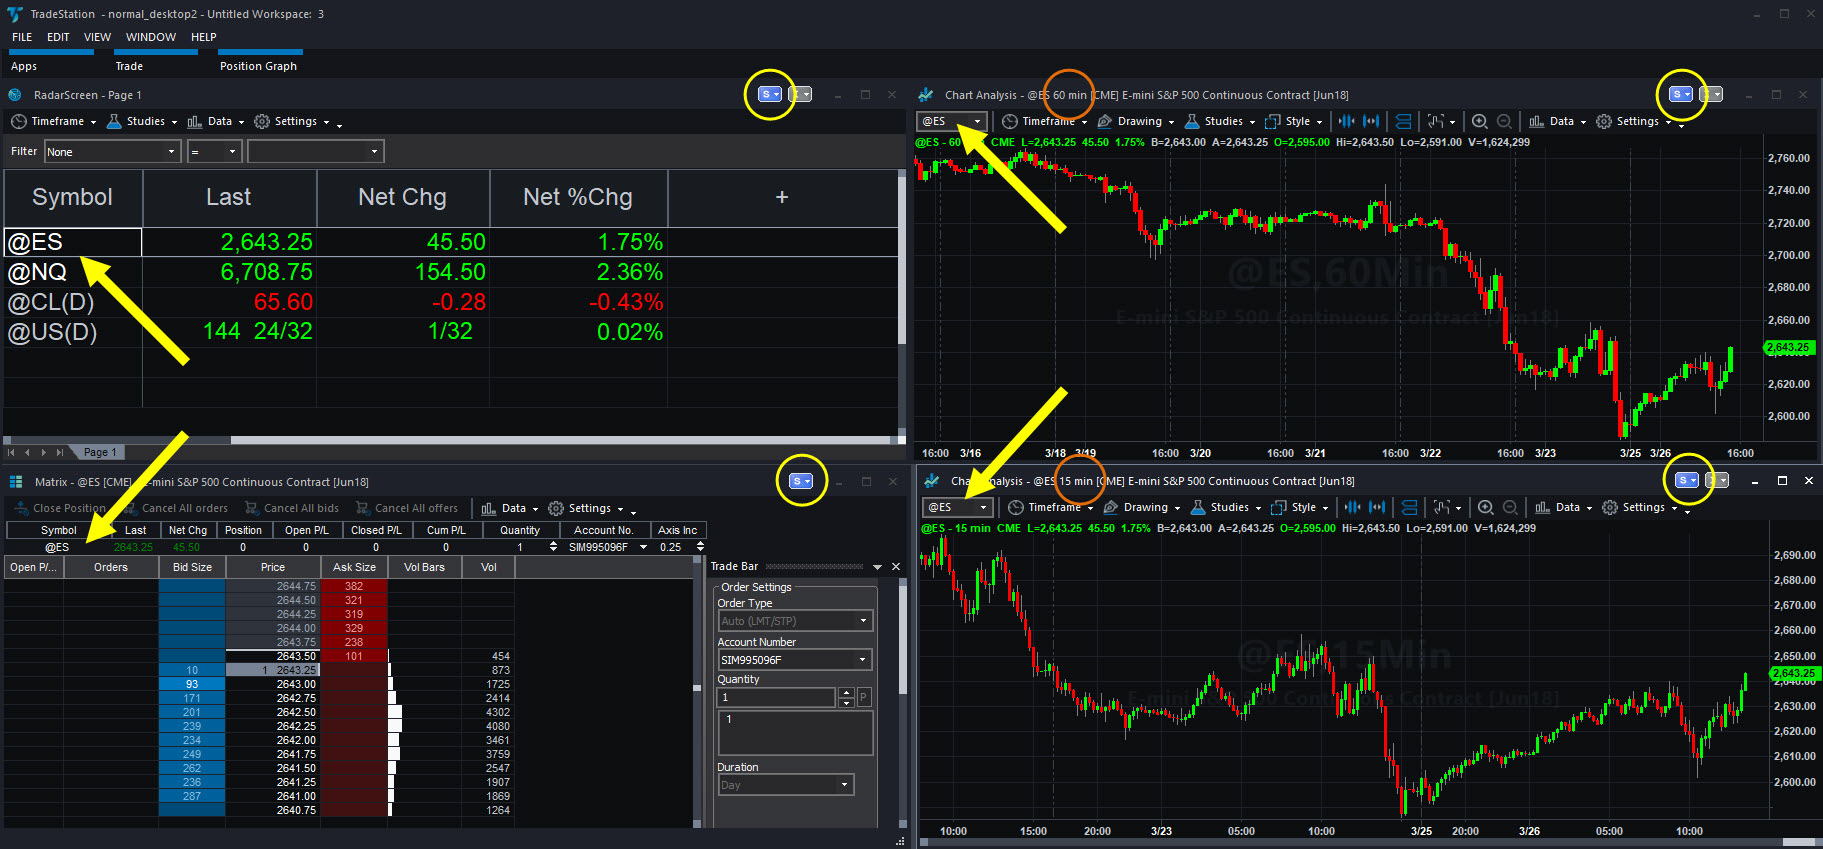 TradeStation linked workspace showing RadarScreen, Matrix and two charts